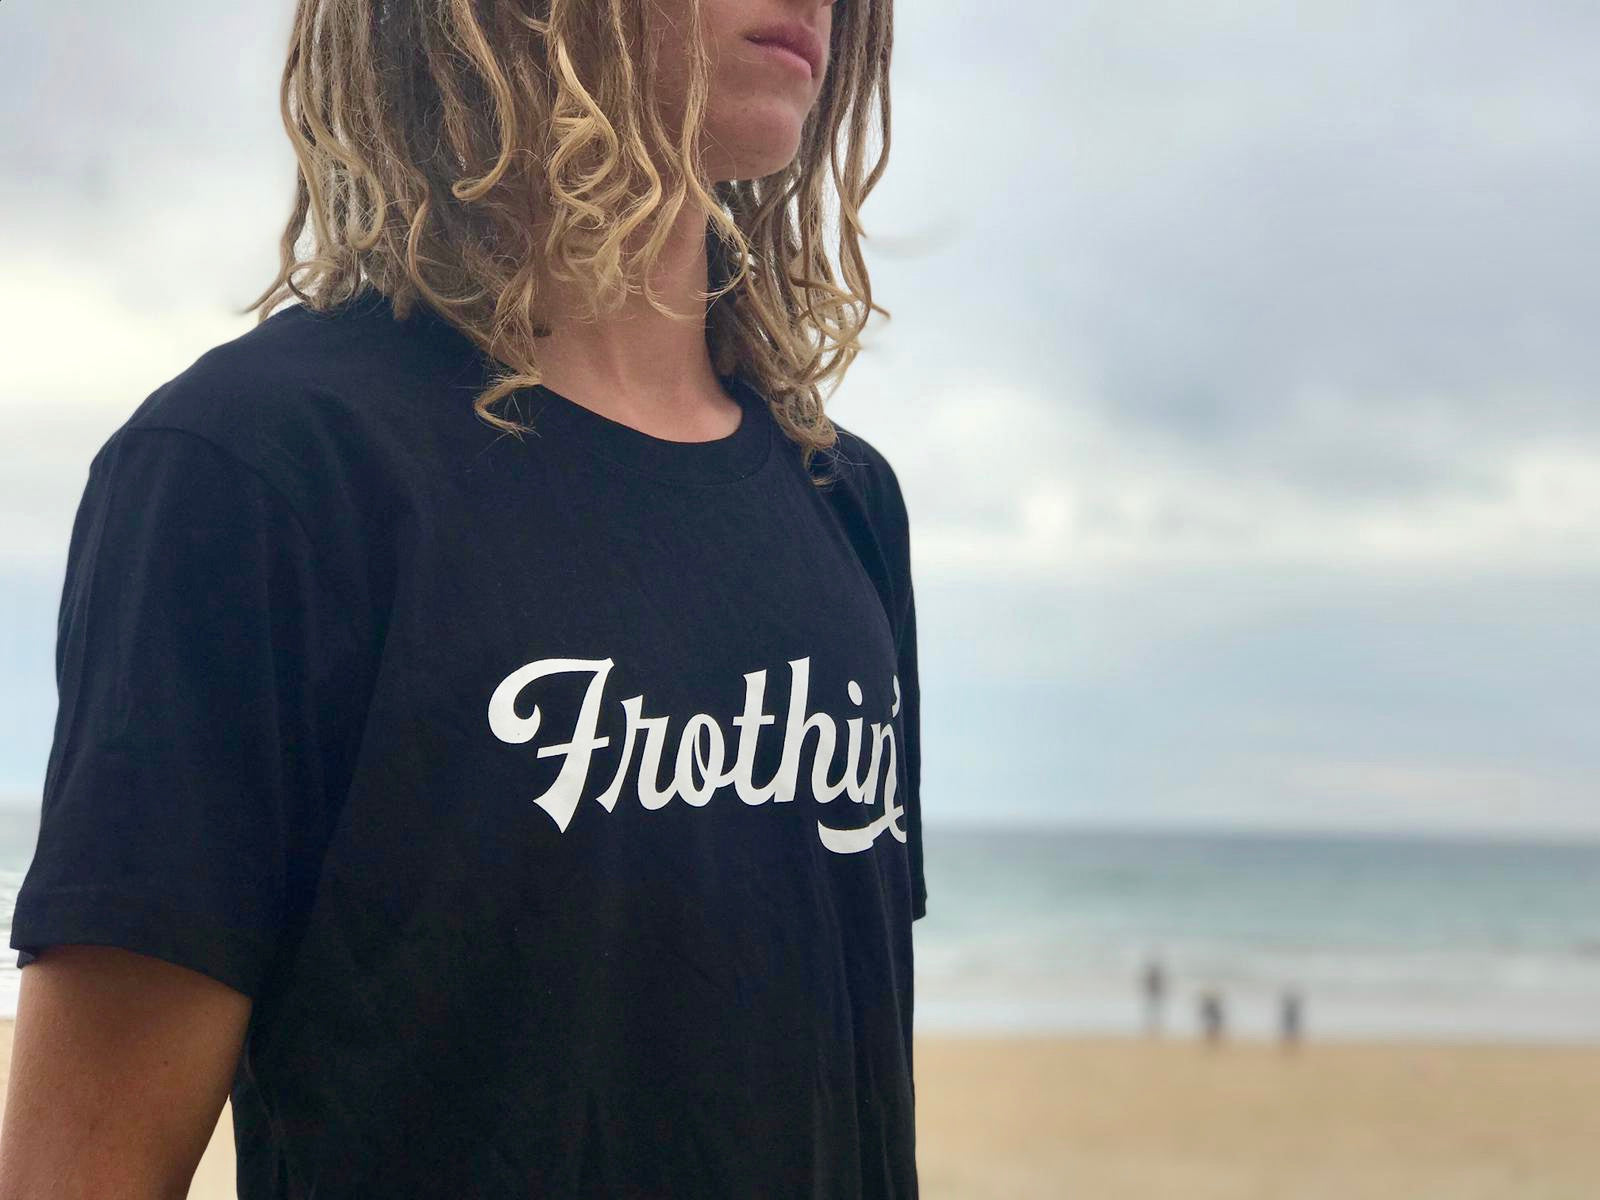 Swell Frothin' Tee